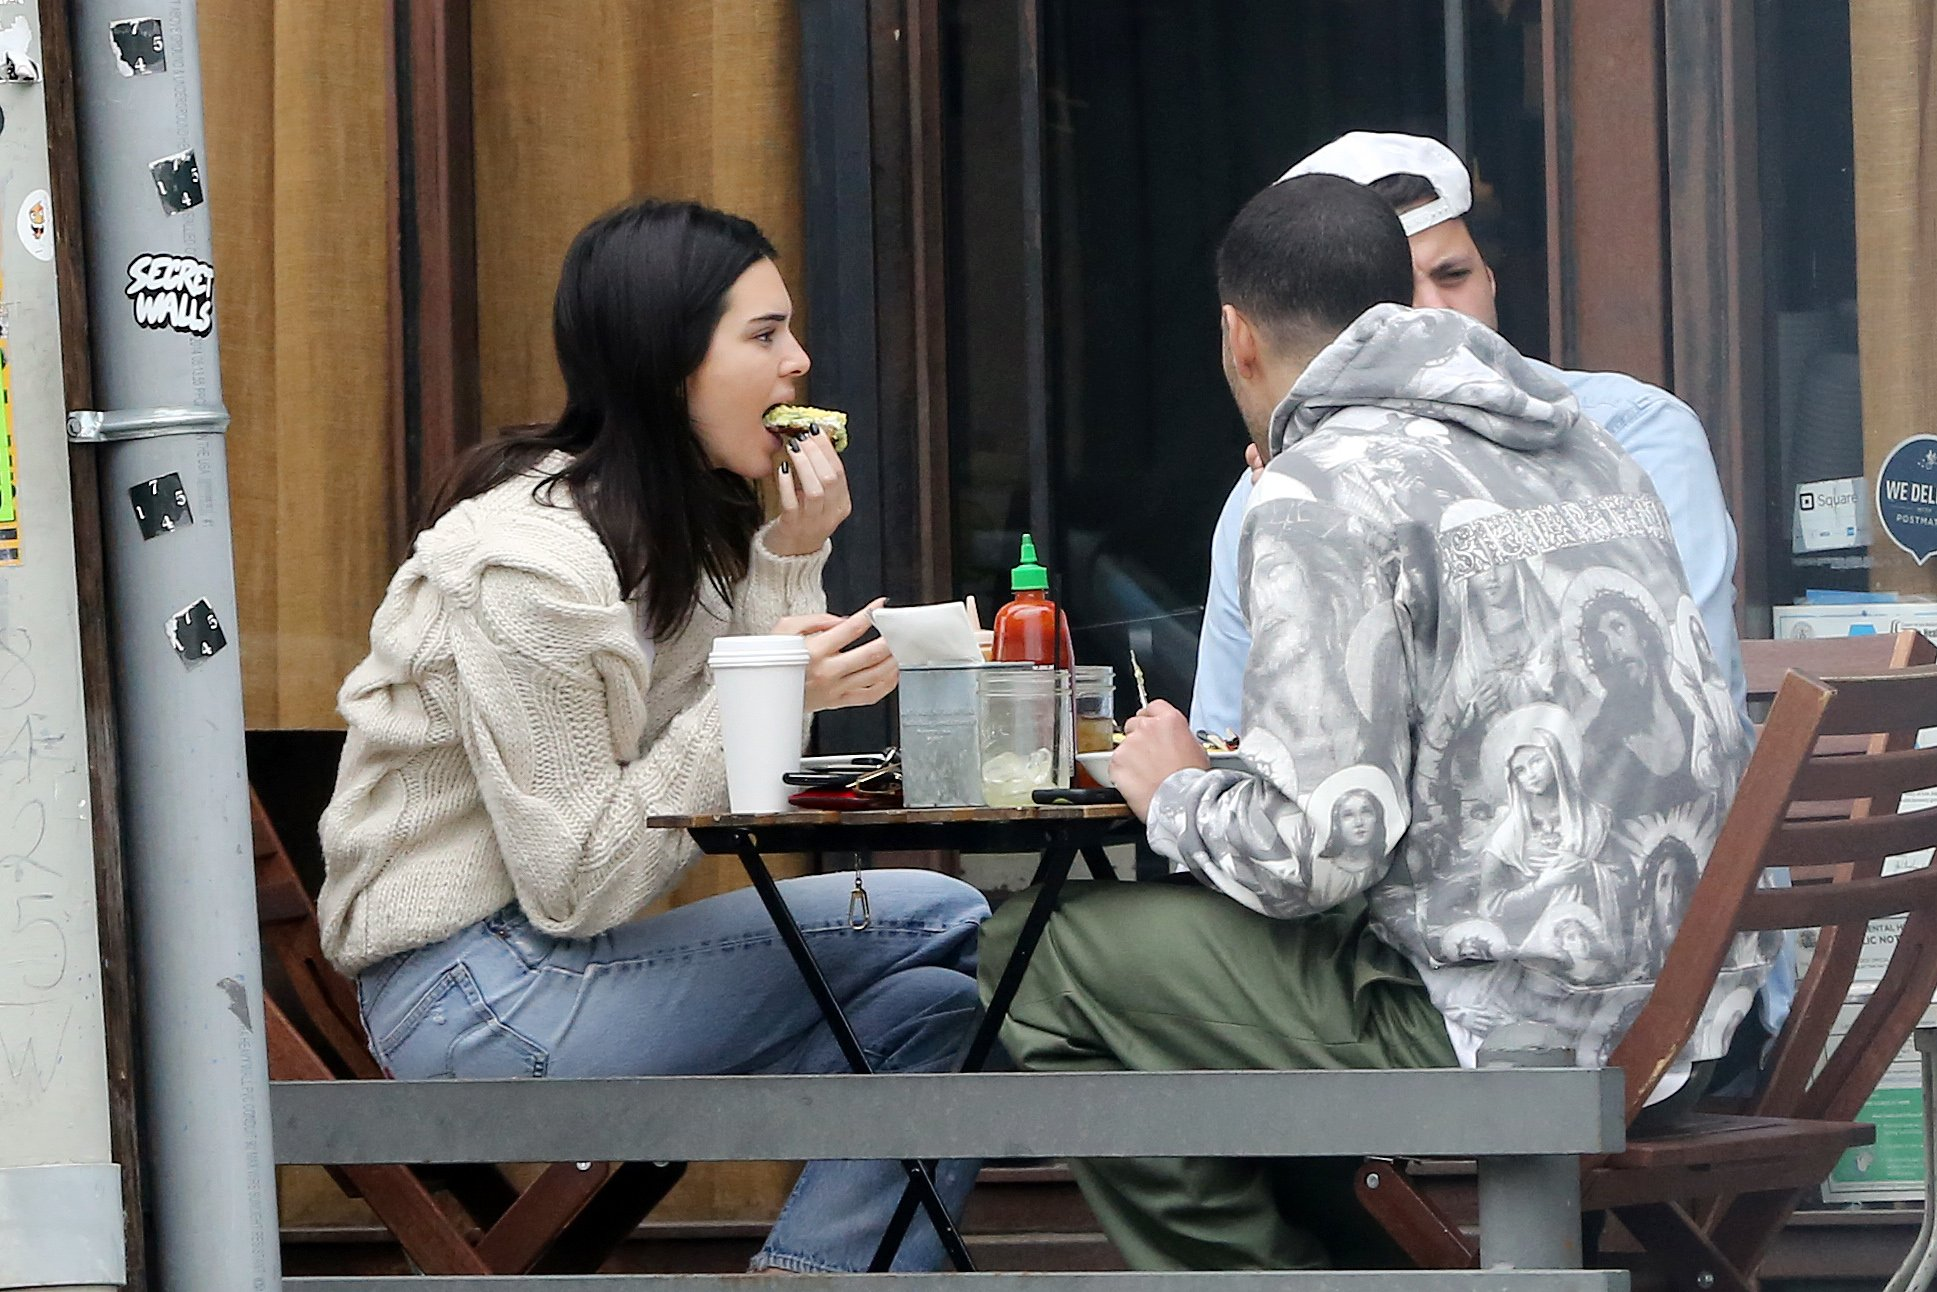 EXCLUSIVE: Model Kendall Jenner stuffs her face as she enjoys lunch with friends on Melrose Place. 05 Mar 2019 Pictured: Kendall Jenner. Photo credit: Rachpoot/MEGA TheMegaAgency.com +1 888 505 6342 (Mega Agency TagID: MEGA375081_030.jpg) [Photo via Mega Agency]